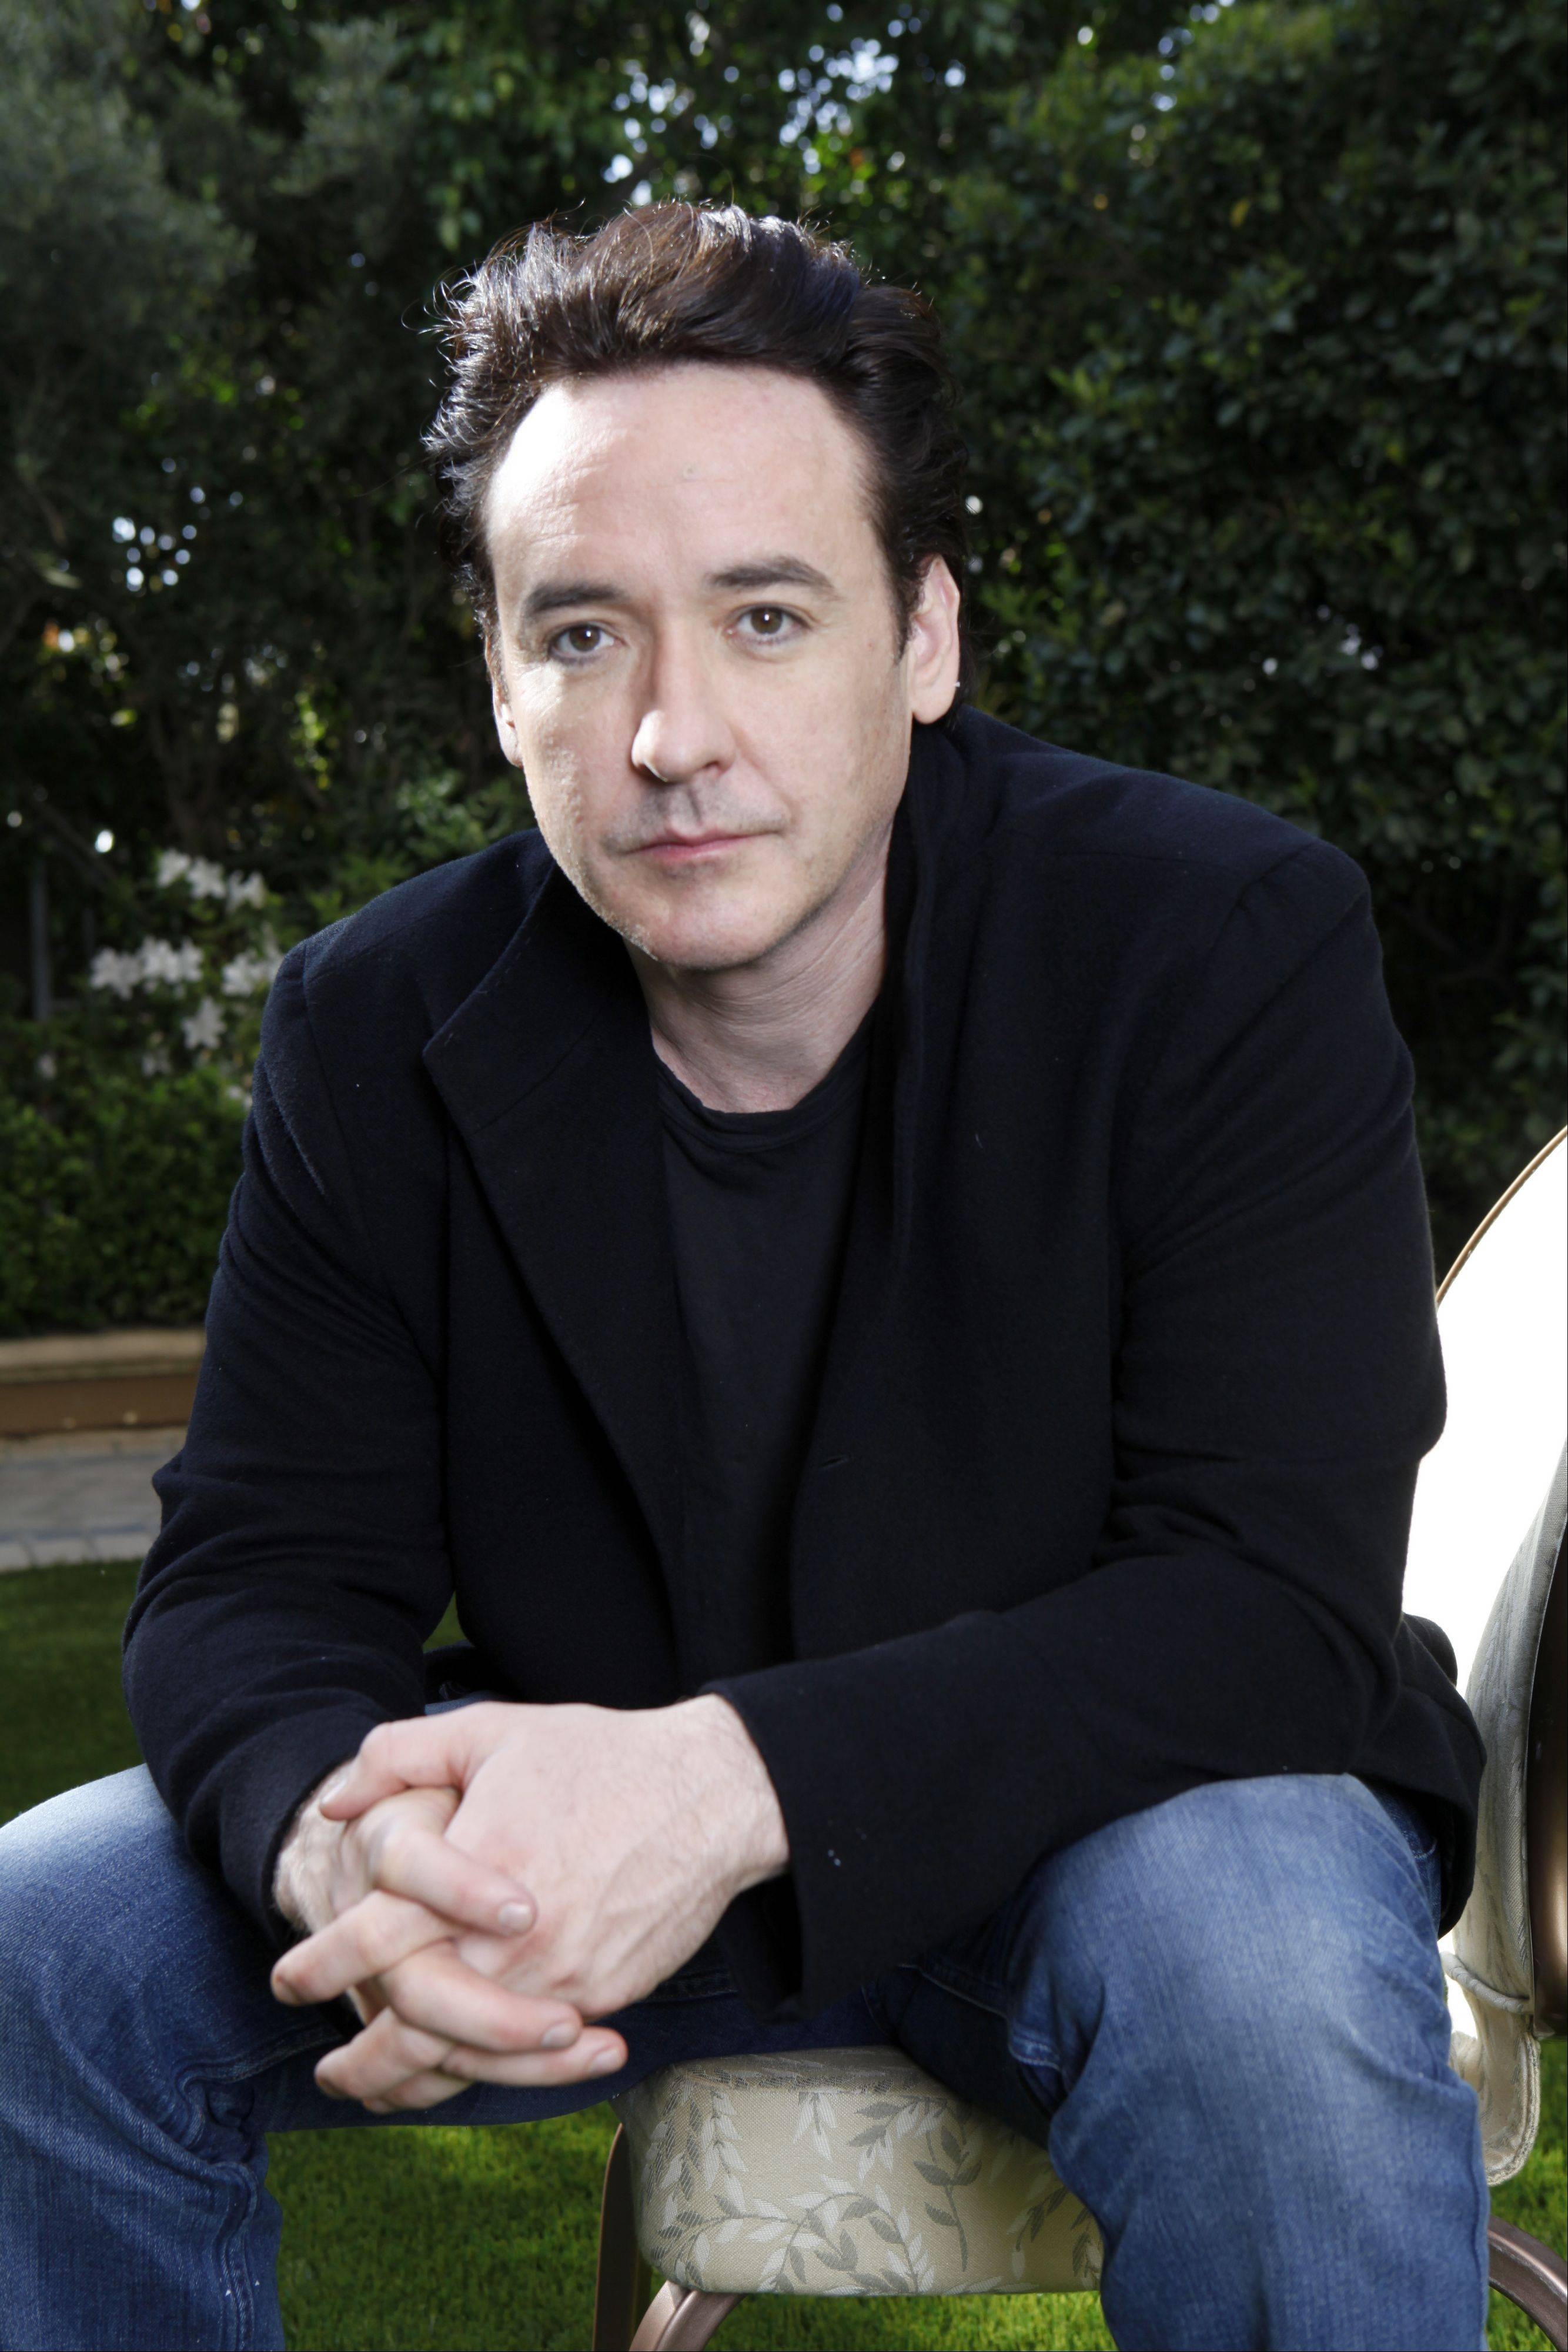 John Cusack will make an appearance at the Chicago Comic & Entertainment Expo (C2E2) this weekend.